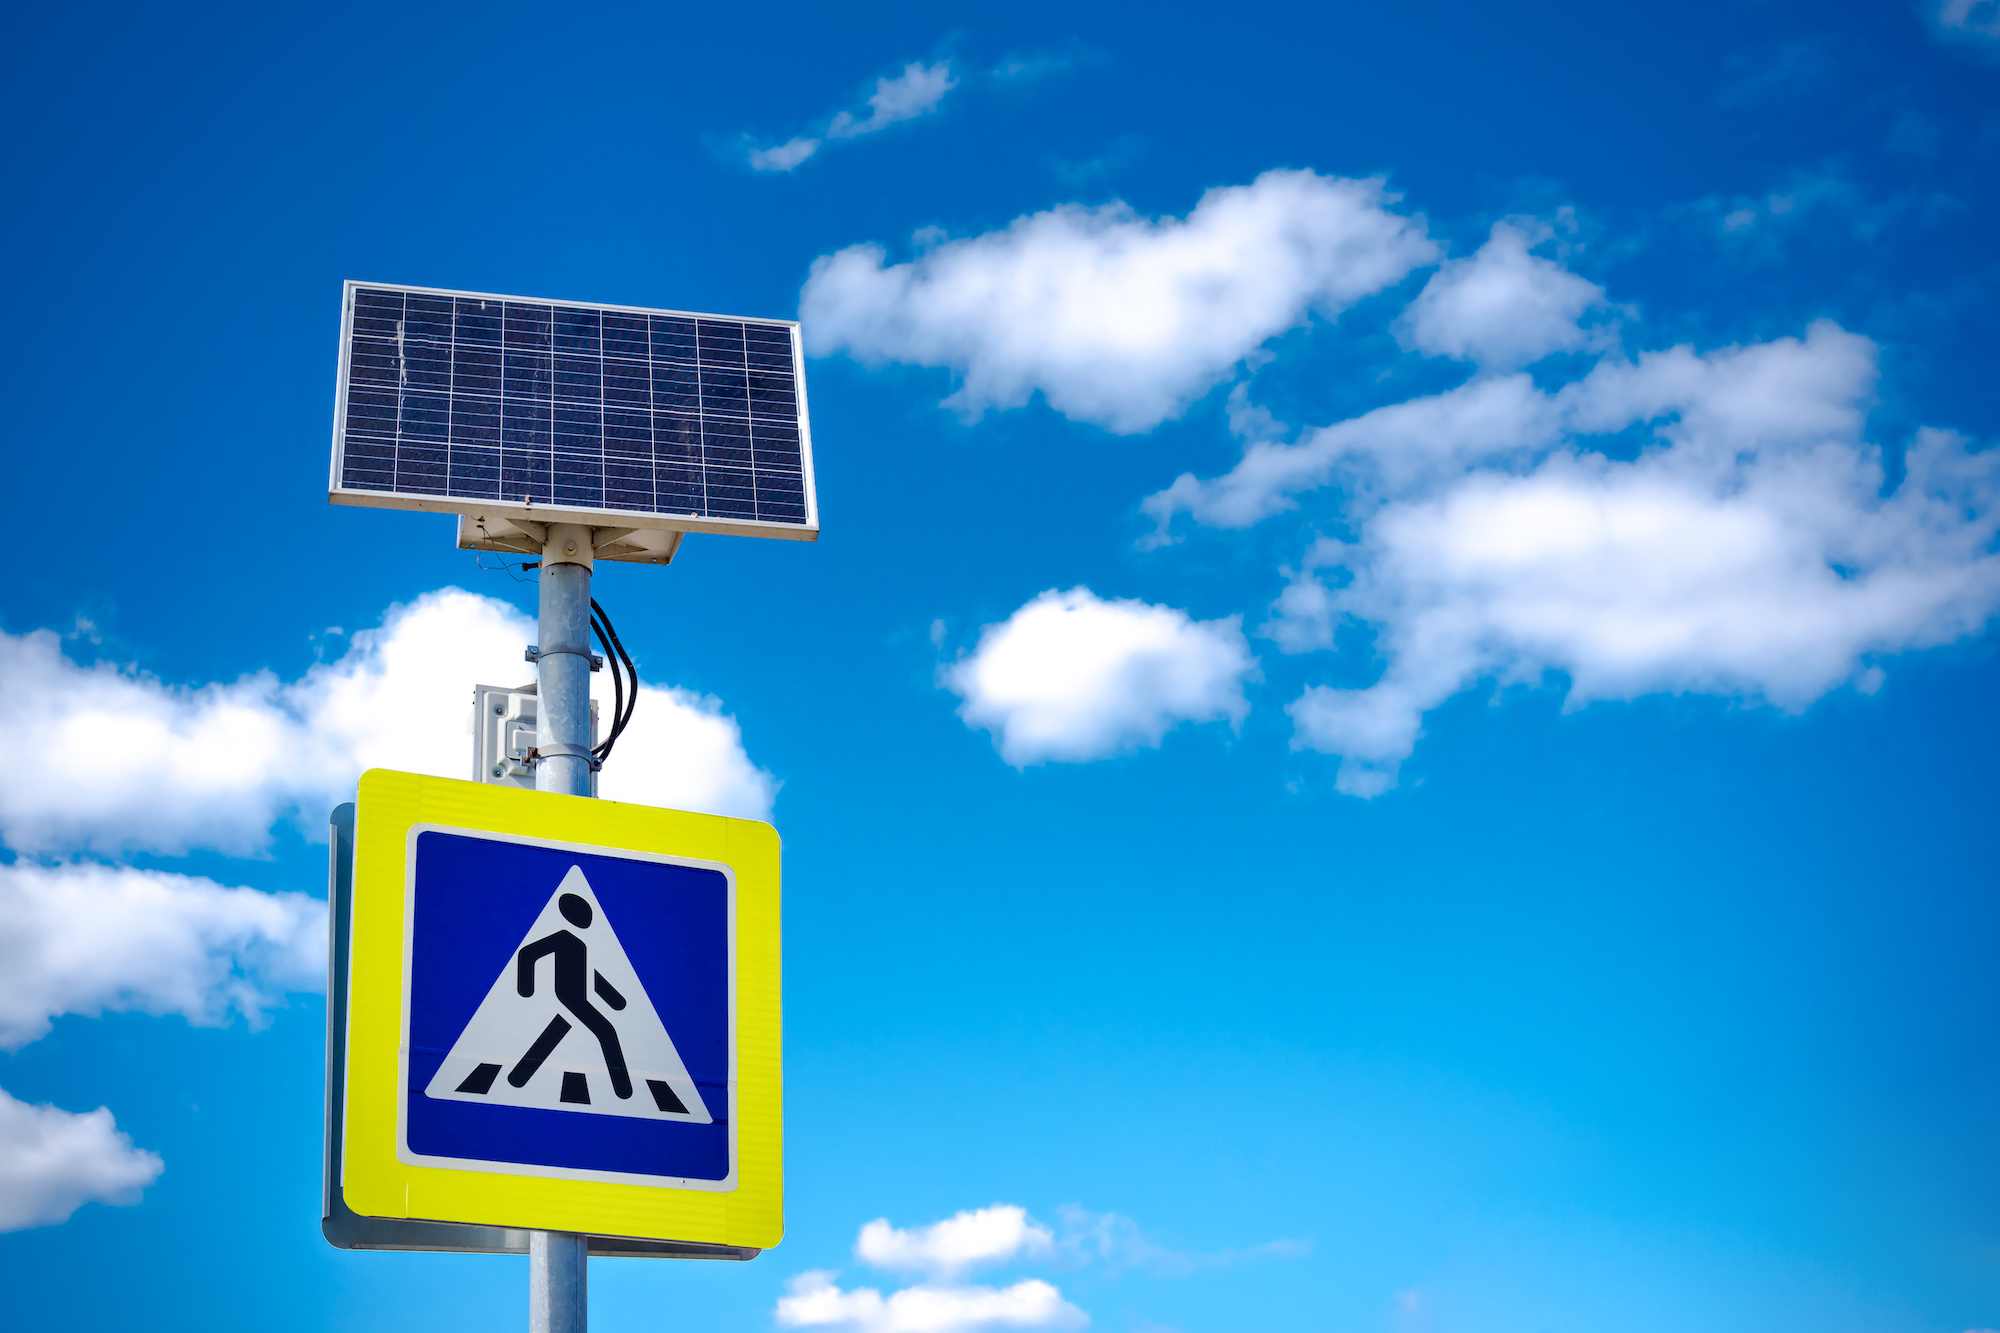 Bright blue and yellow pedestrian crosswalk sign with traffic warning. Powered by solar energy with its own solar panel